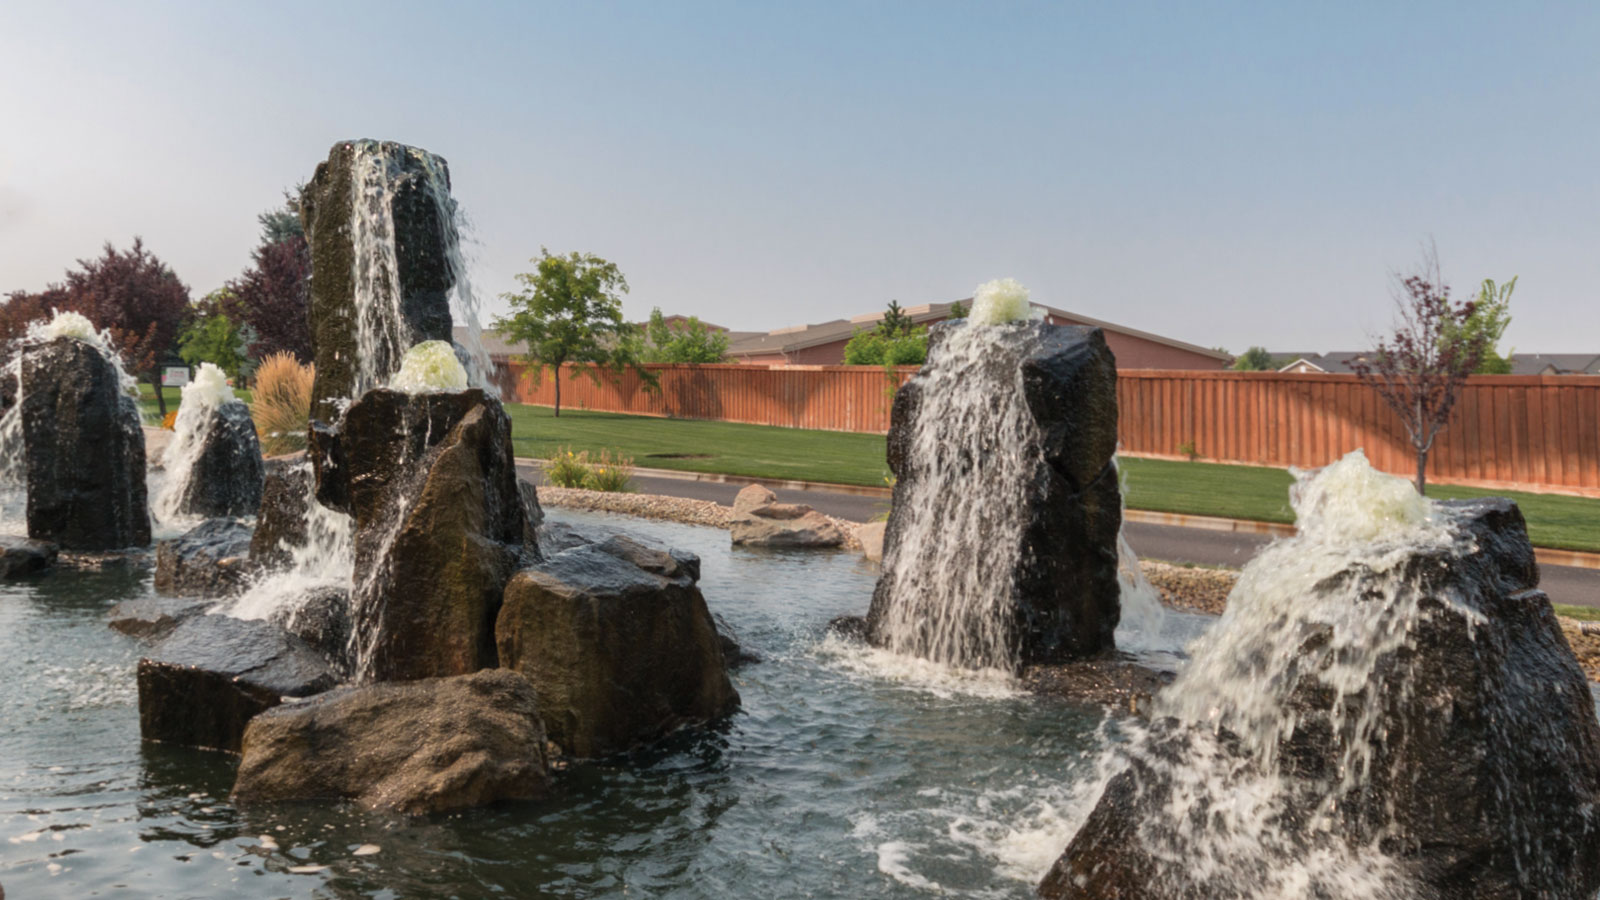 Lochsa falls subdivision meridian idaho homes and community for Home builders in idaho falls